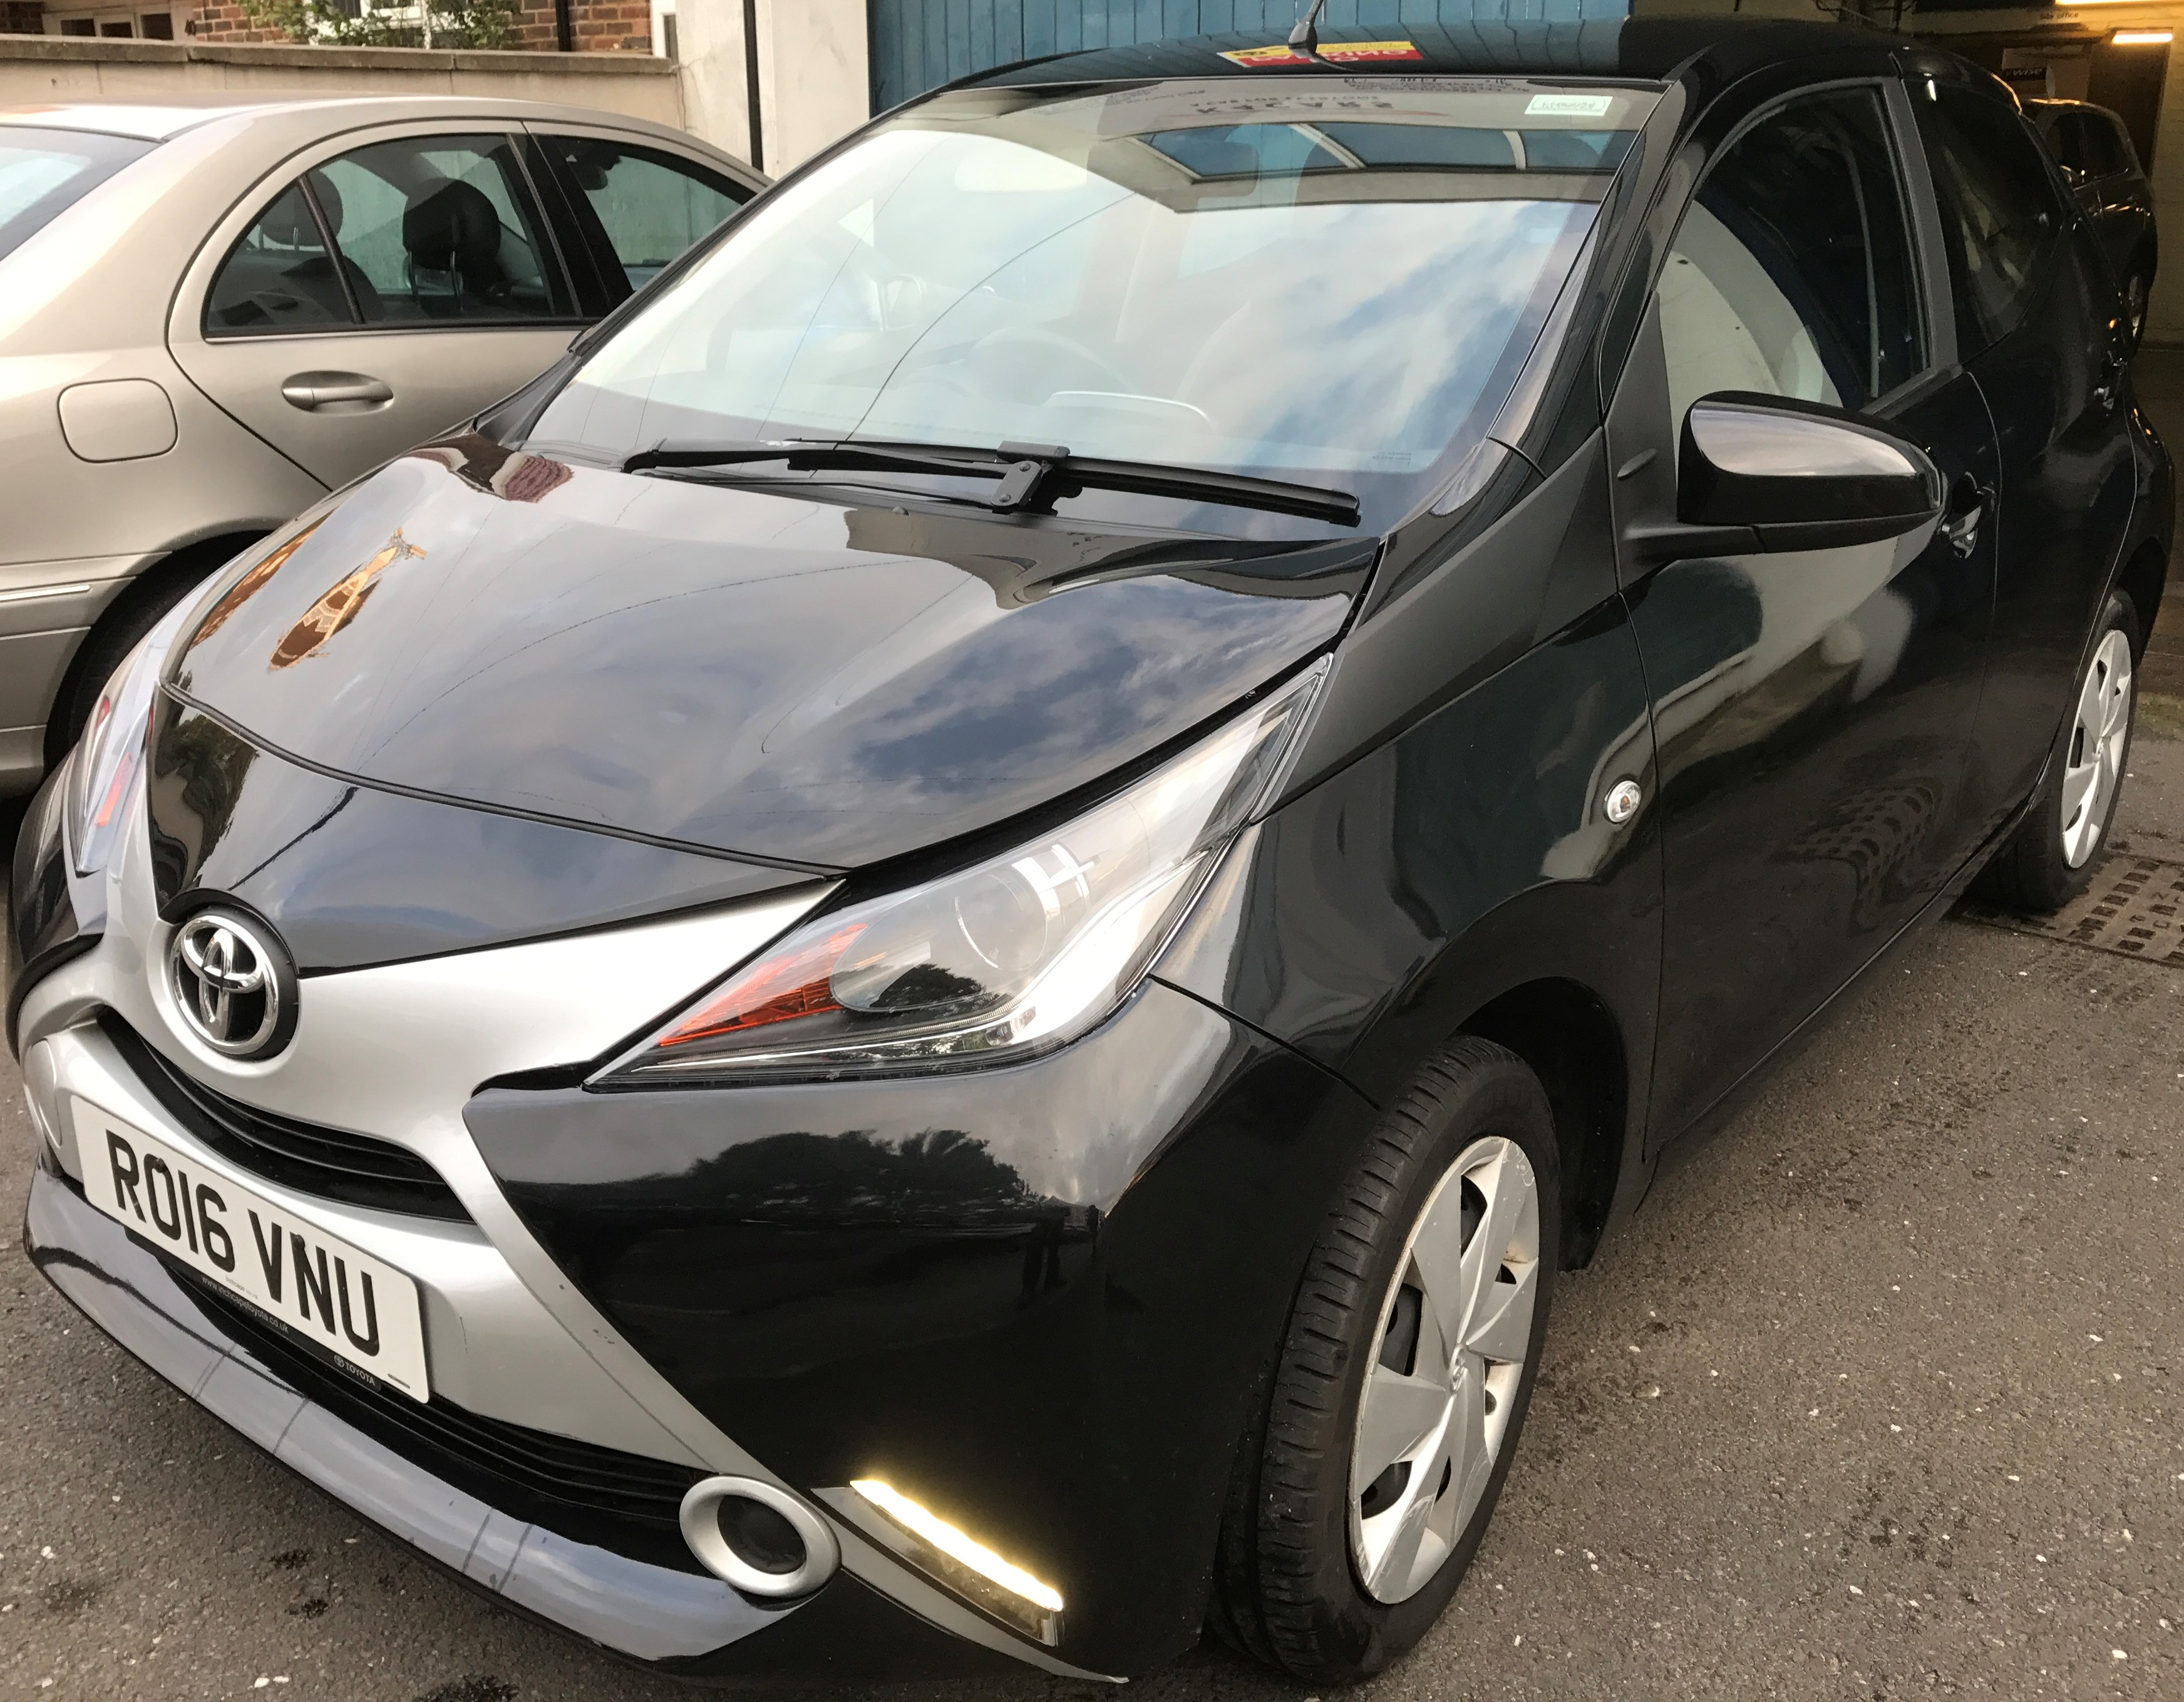 Toyota Aygo 1.0 VVT-i x-play 5dr 1 OWNER ,1 YEAR WARRENTY,£6250